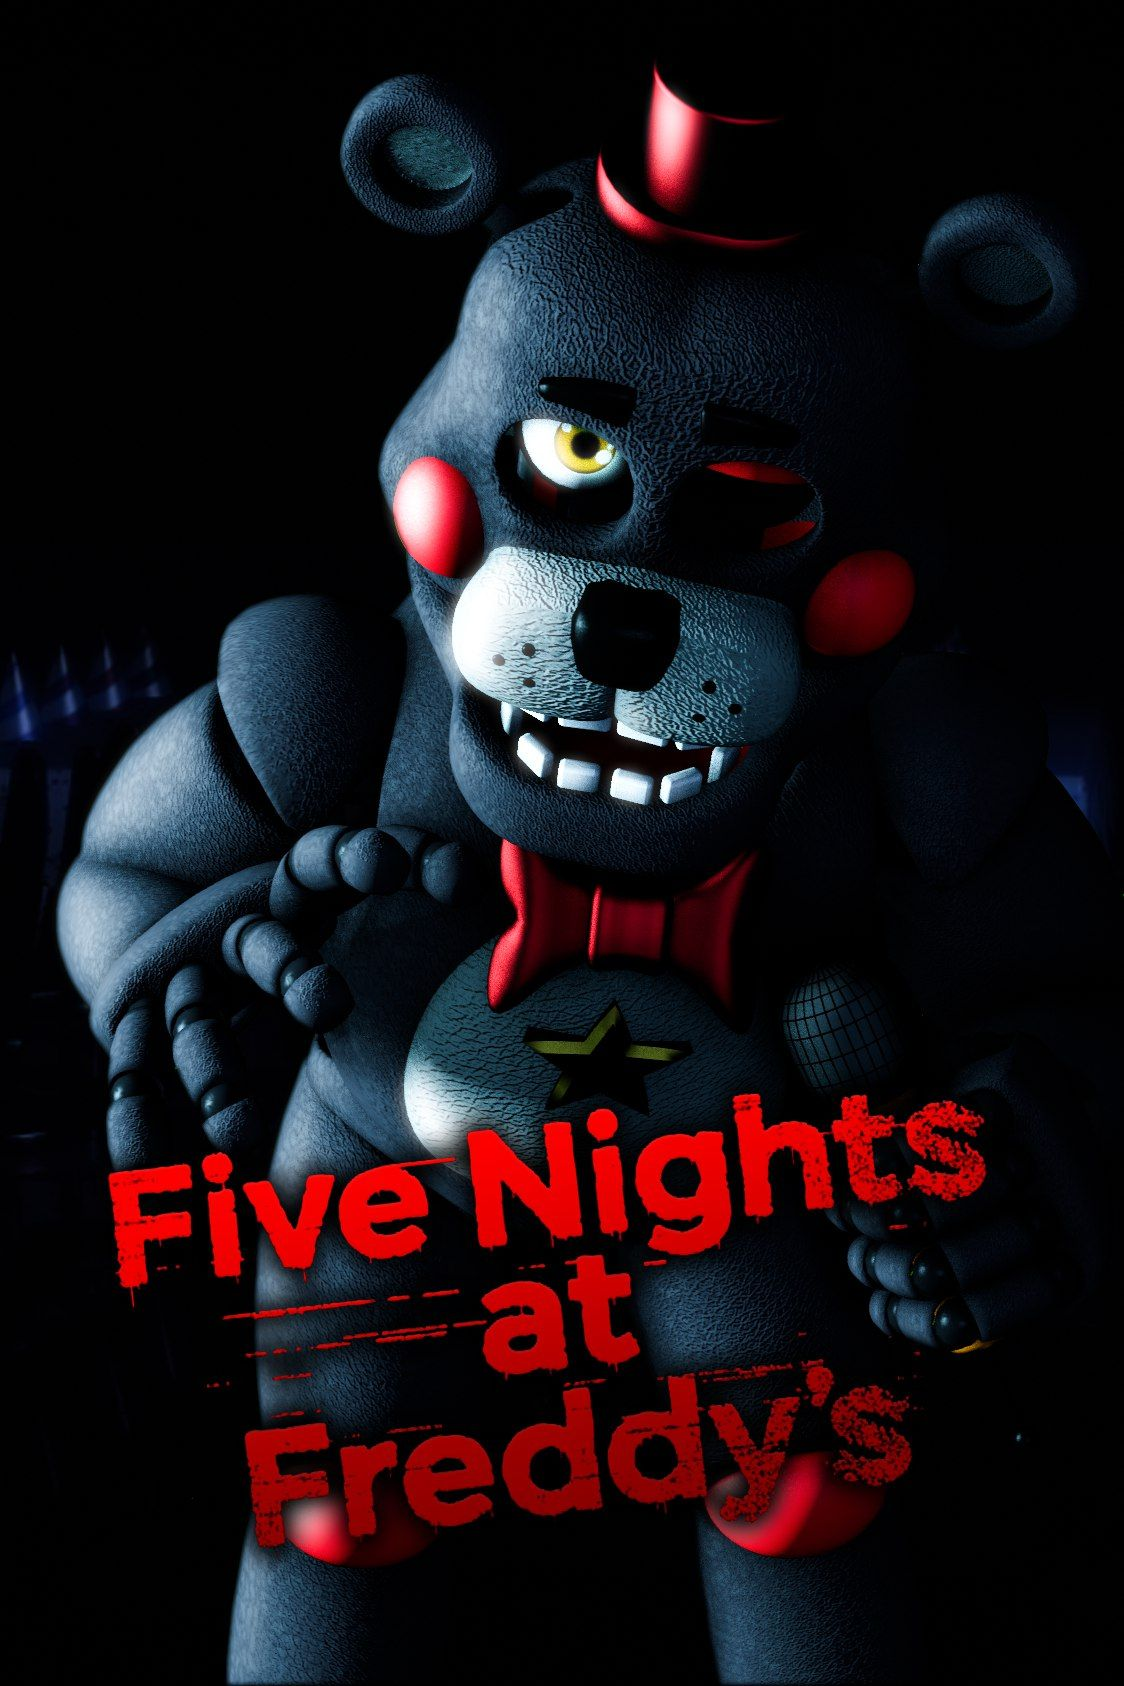 Lefty. By the way......Who made Lefty anyway? Fnaf